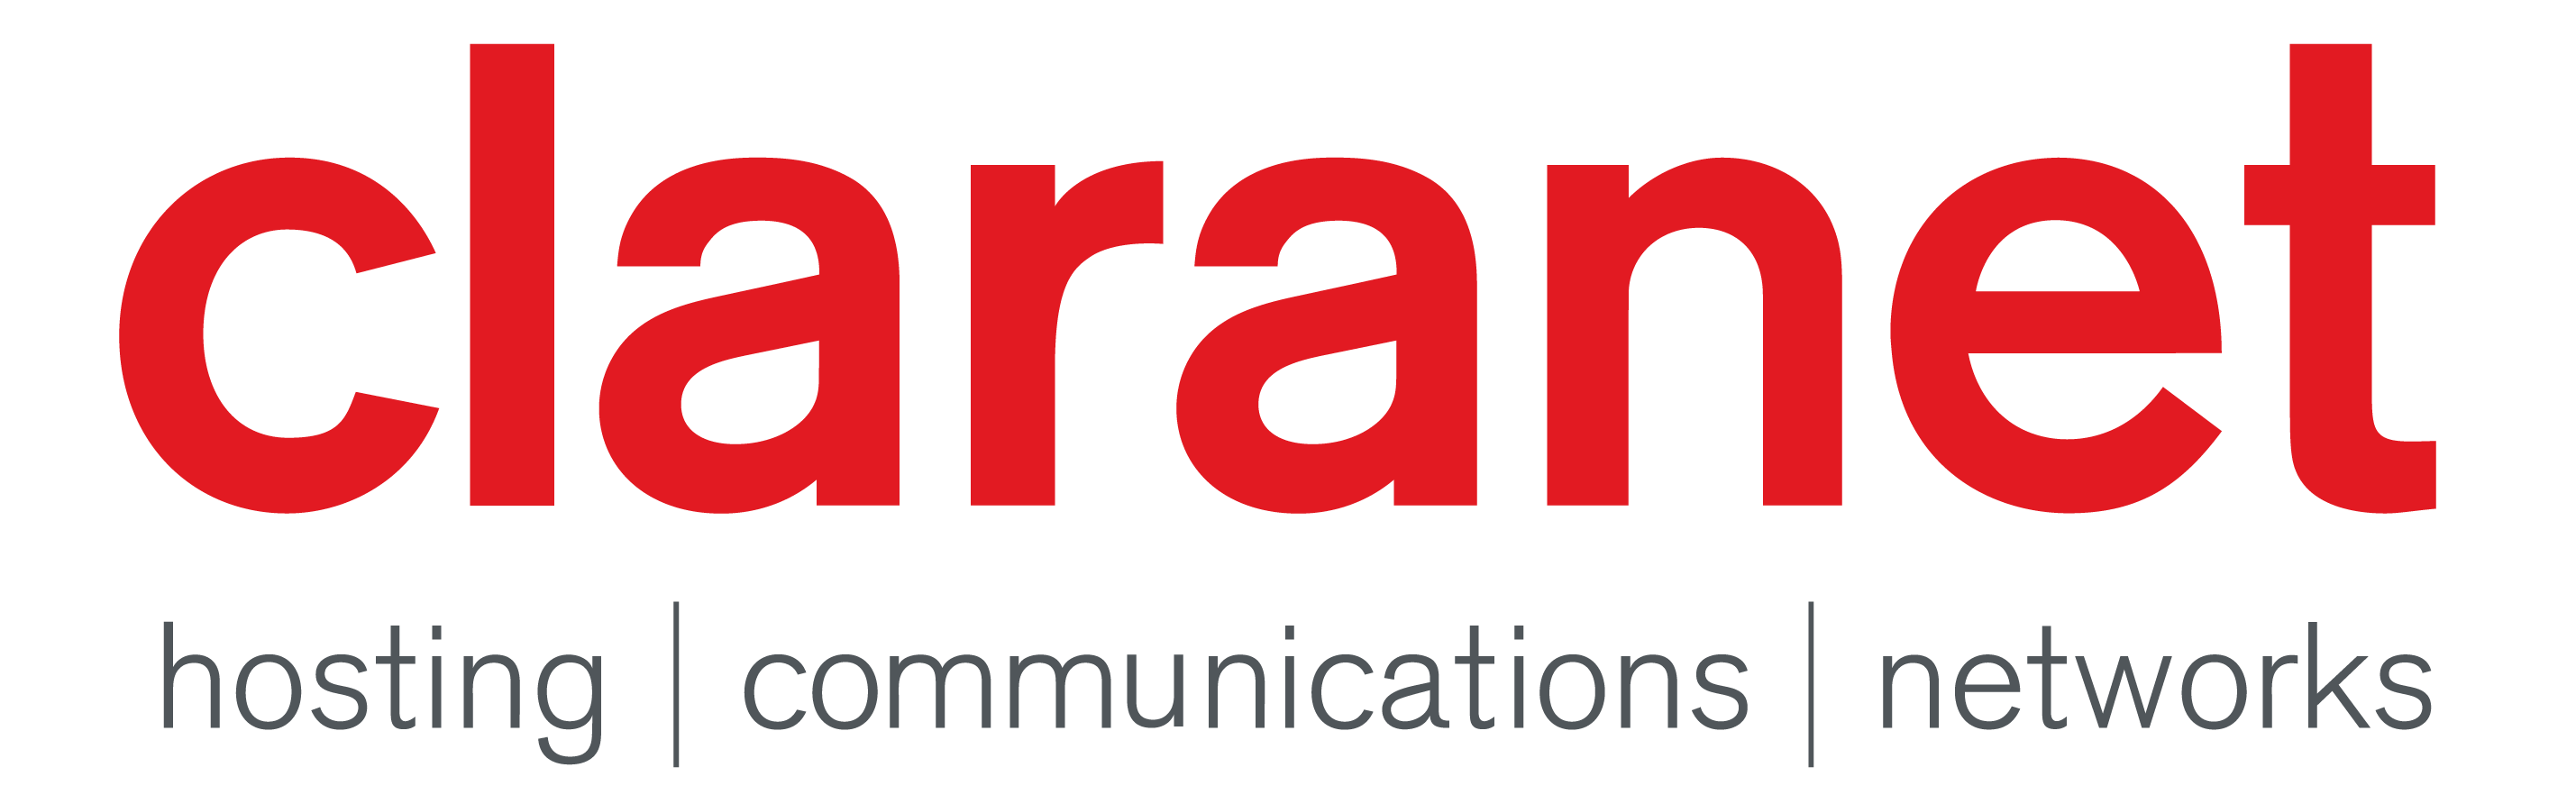 CLARANET_LOGO_-_HOSTING_COMMUNICATIONS_NETWORKS_-_FULL_COLOUR.png